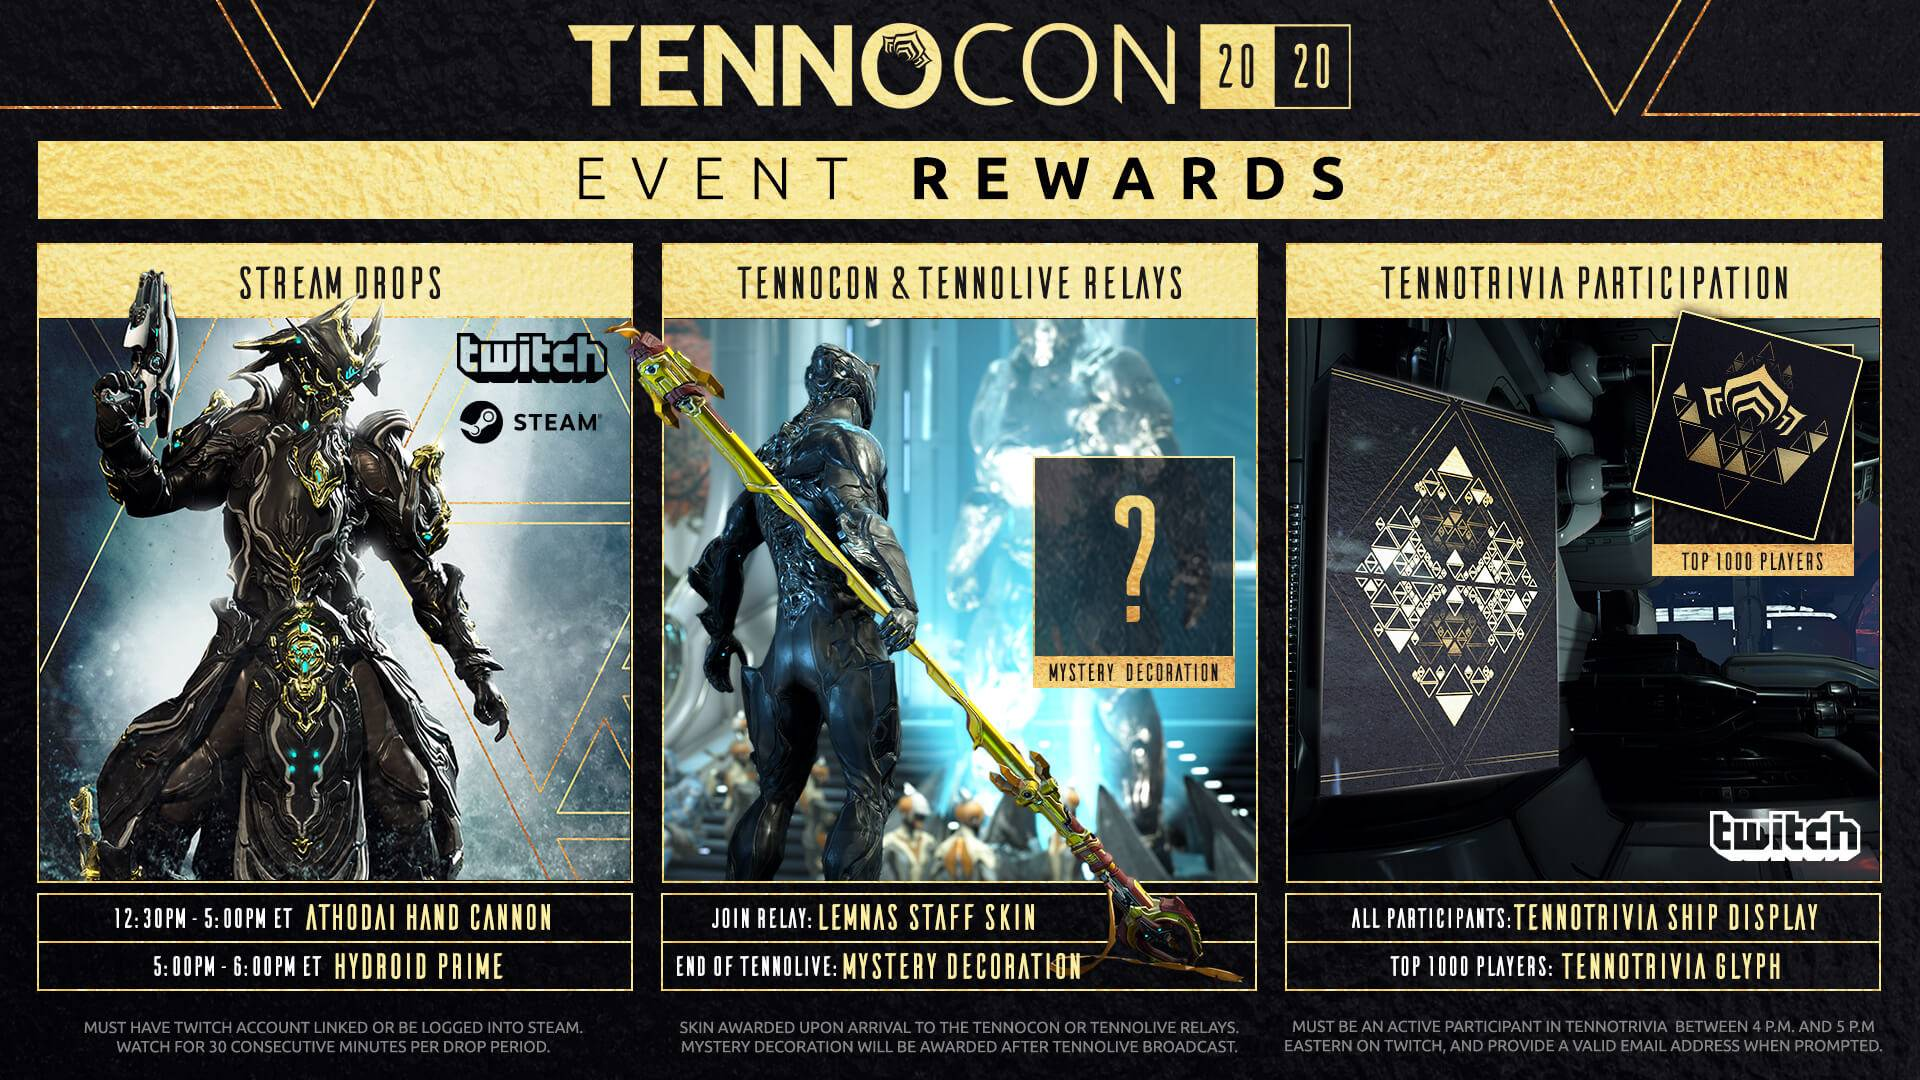 Warframe: How to prepare for TennoCon 2020